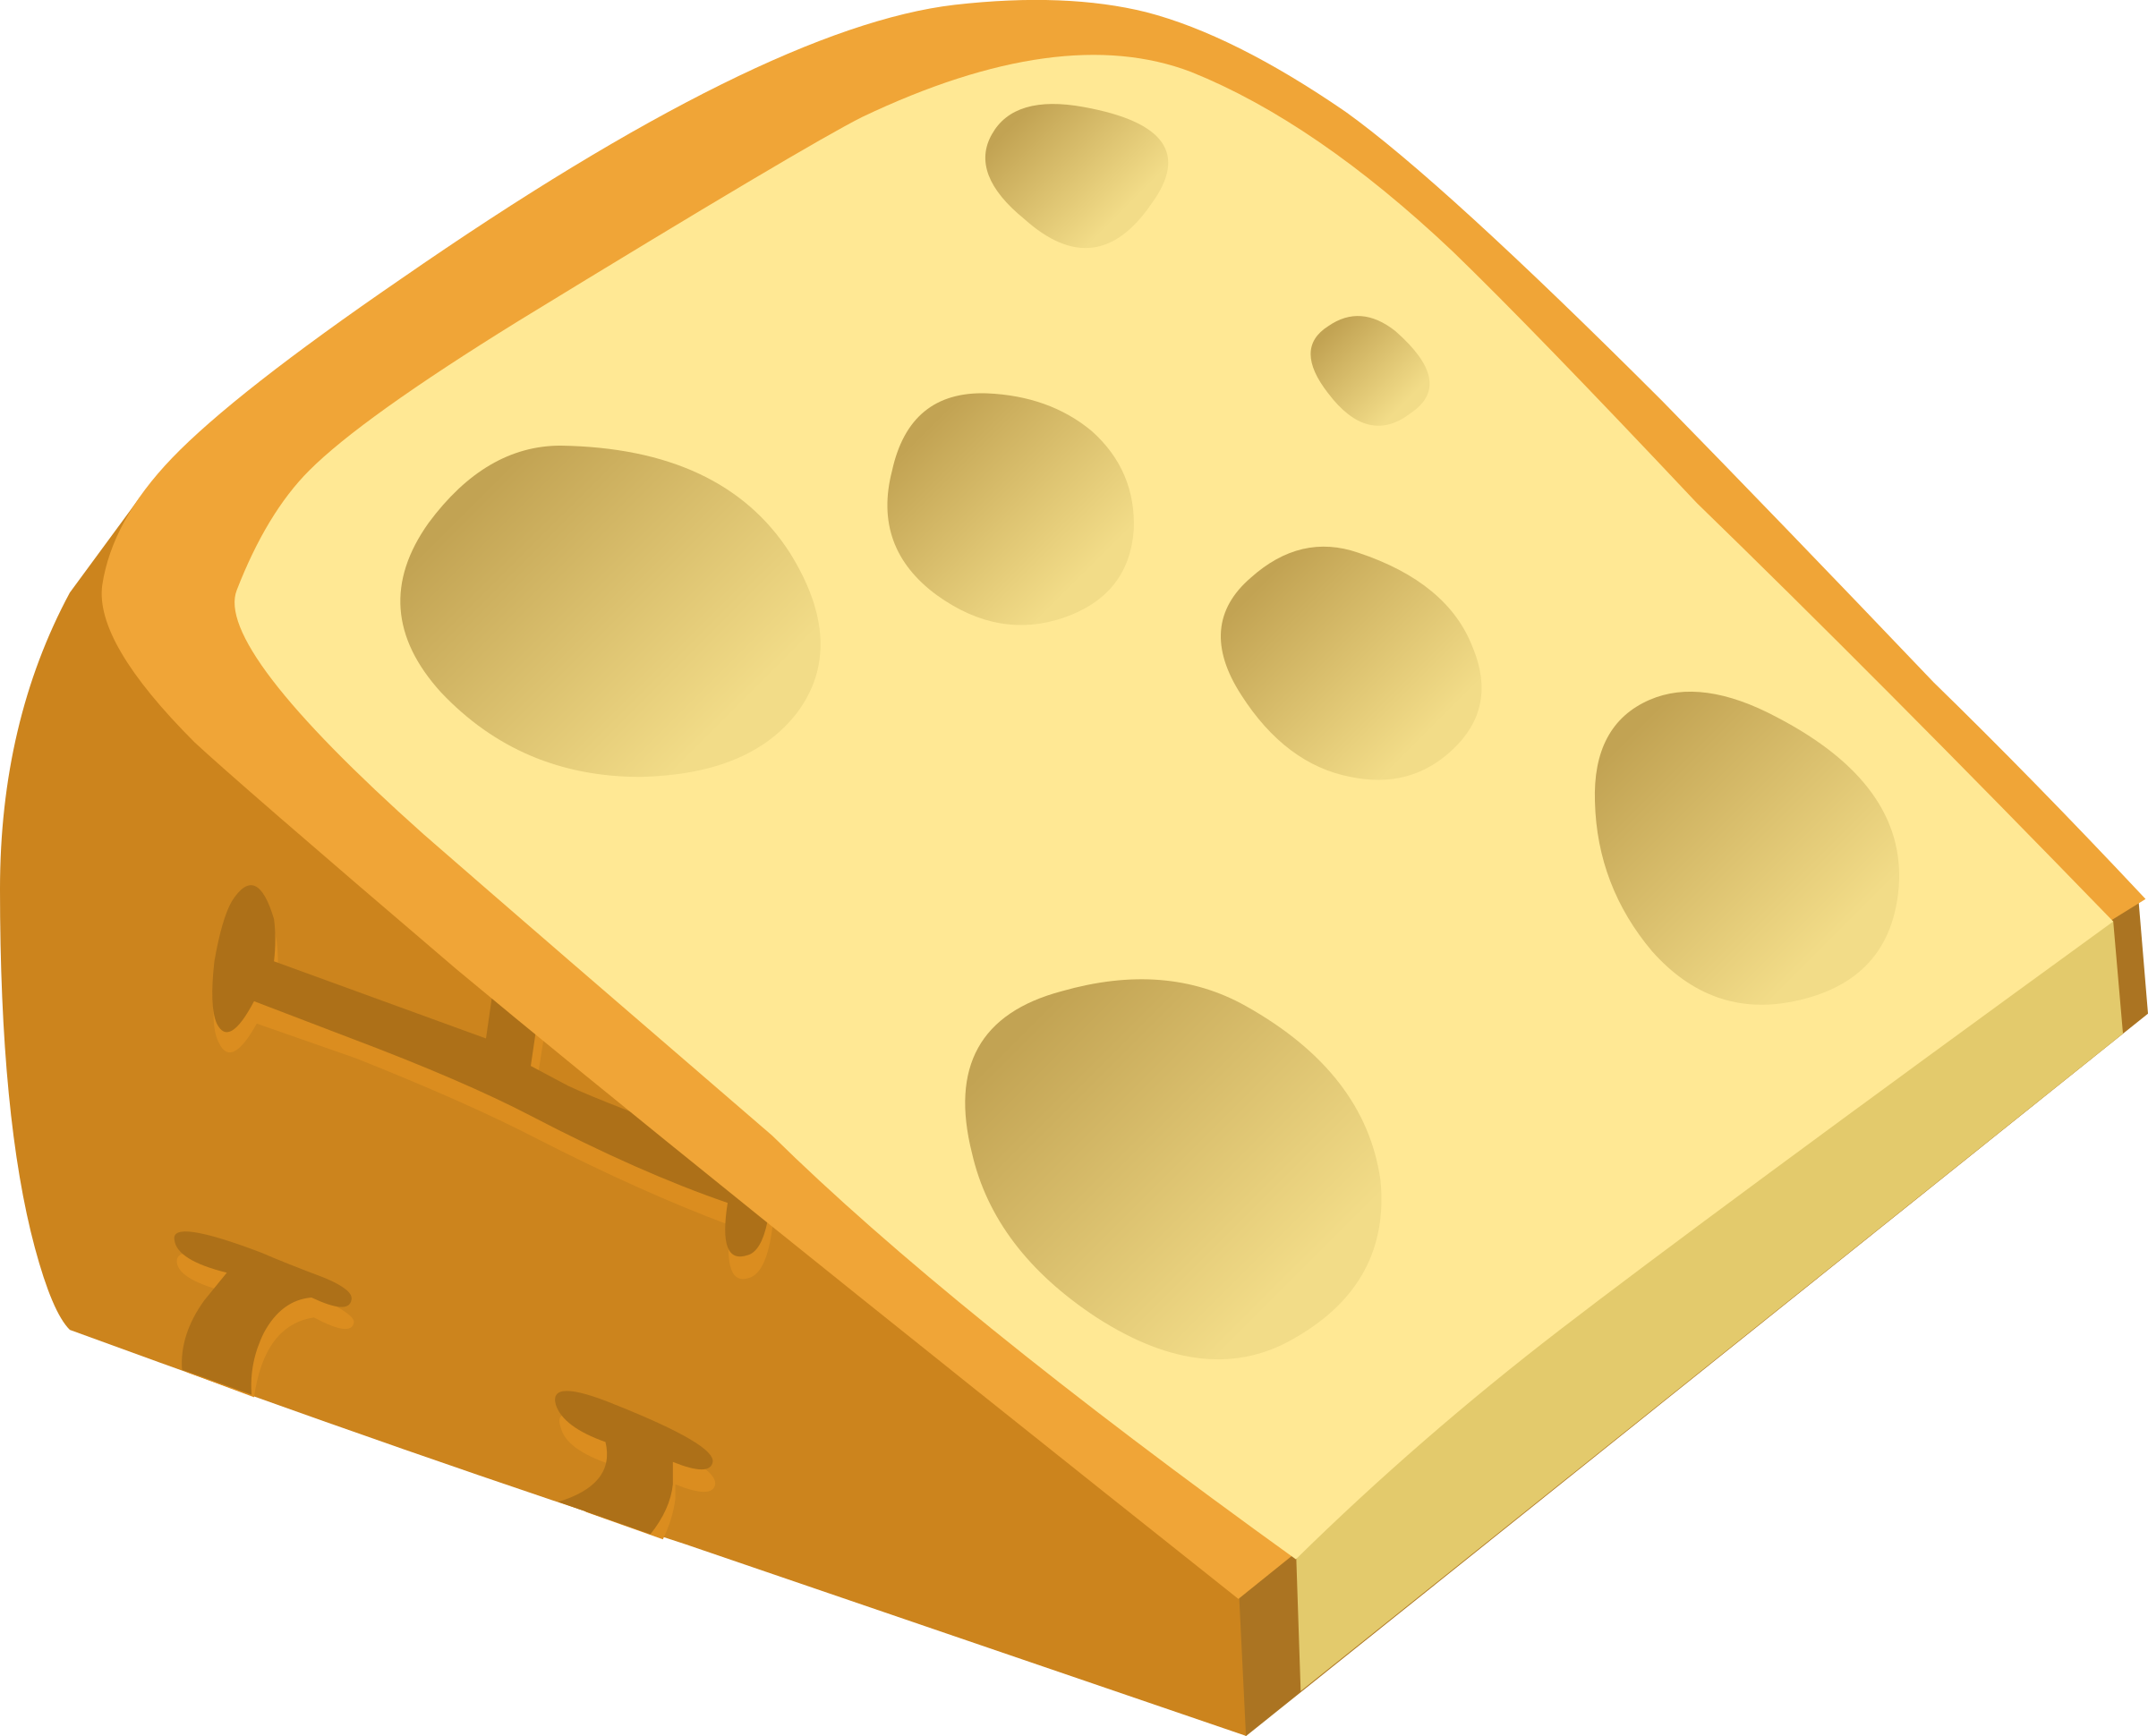 image library stock Cheese PNG images